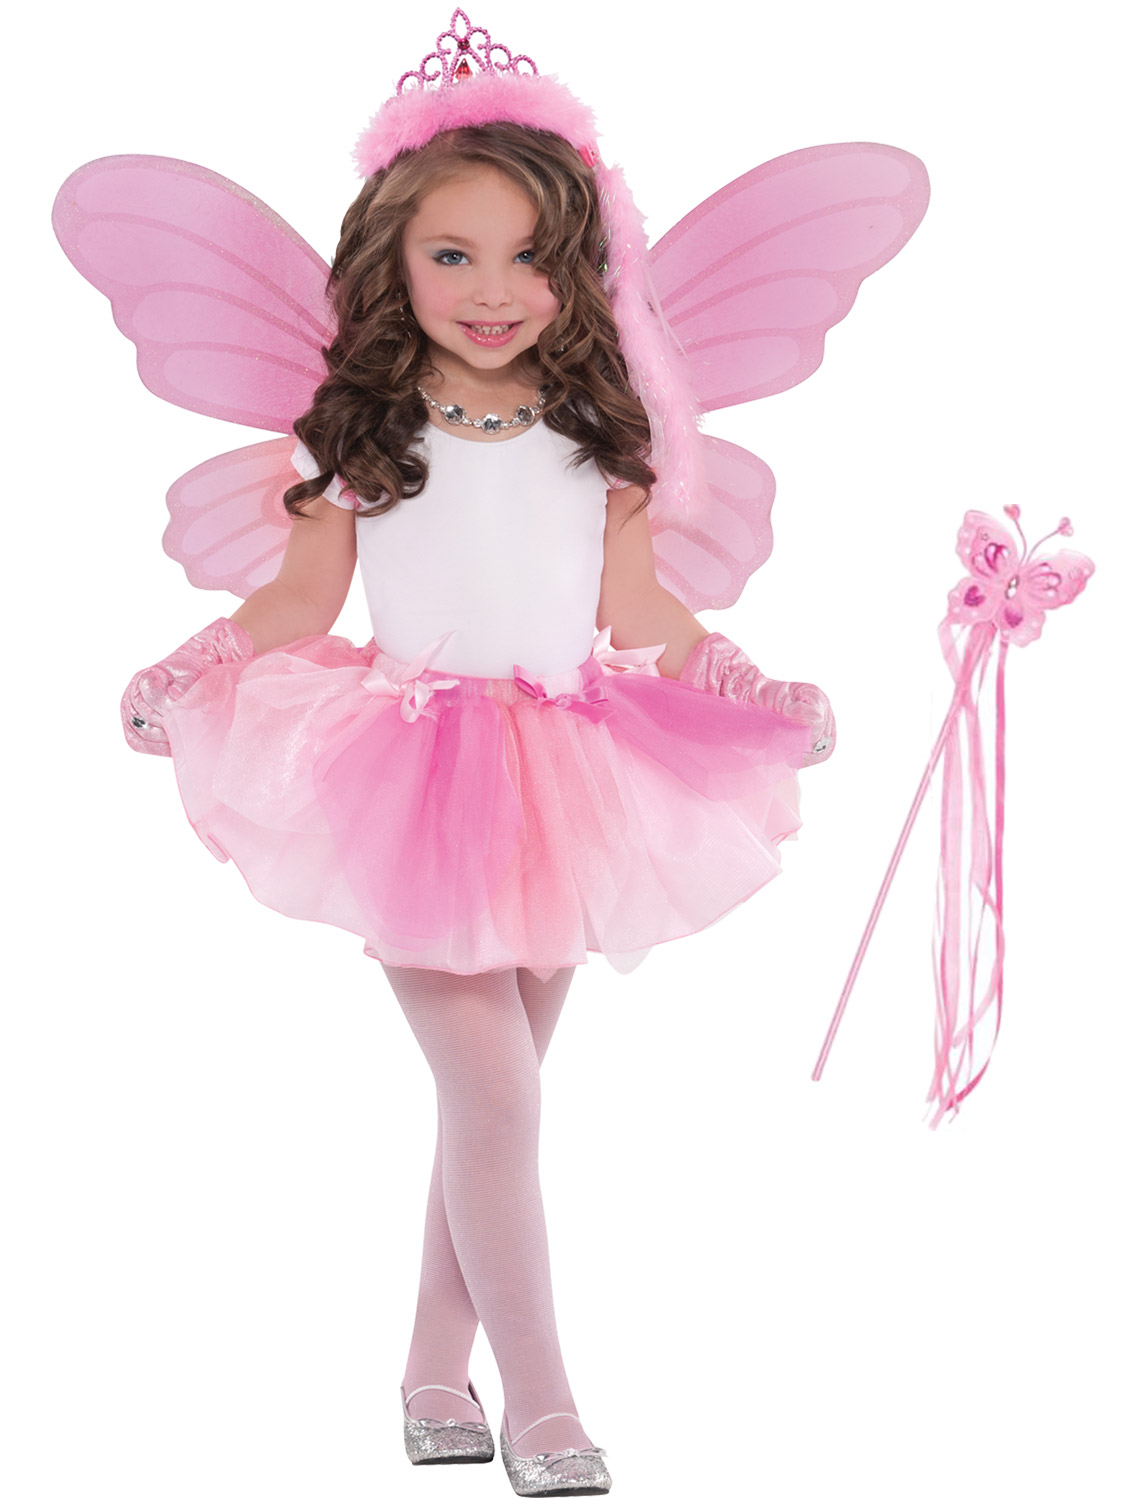 Details about Girls Pink Fairy Costume Childs Fairytale Magic Fancy Dress  Outfit Accessories